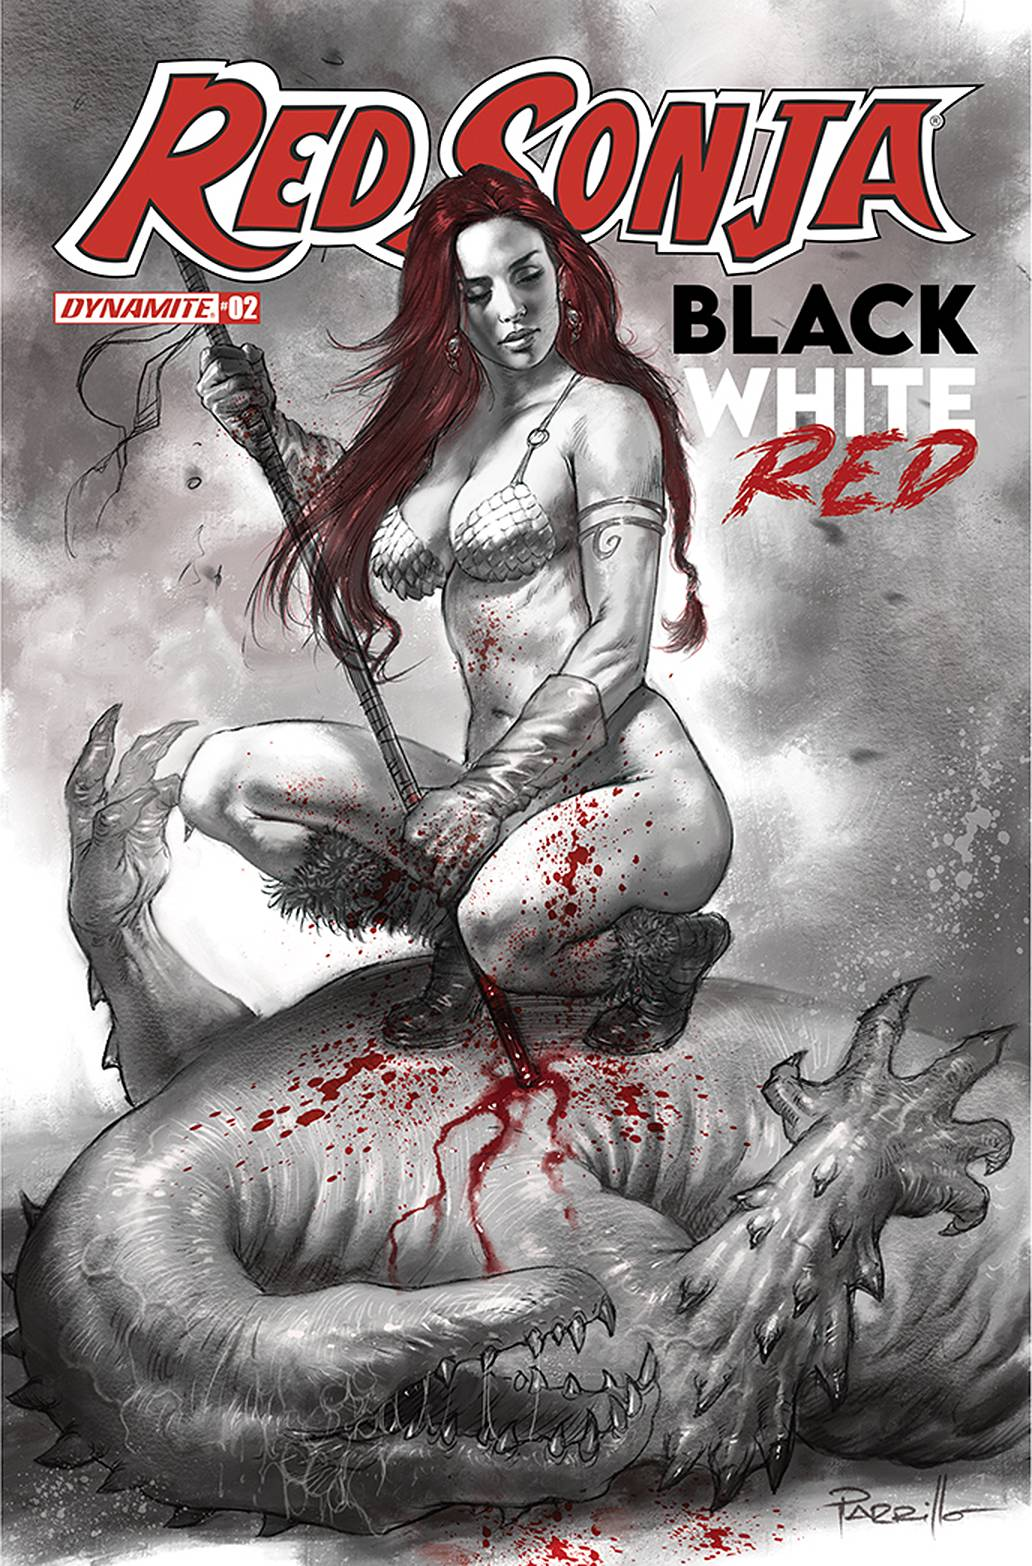 RED SONJA BLACK WHITE RED #2a